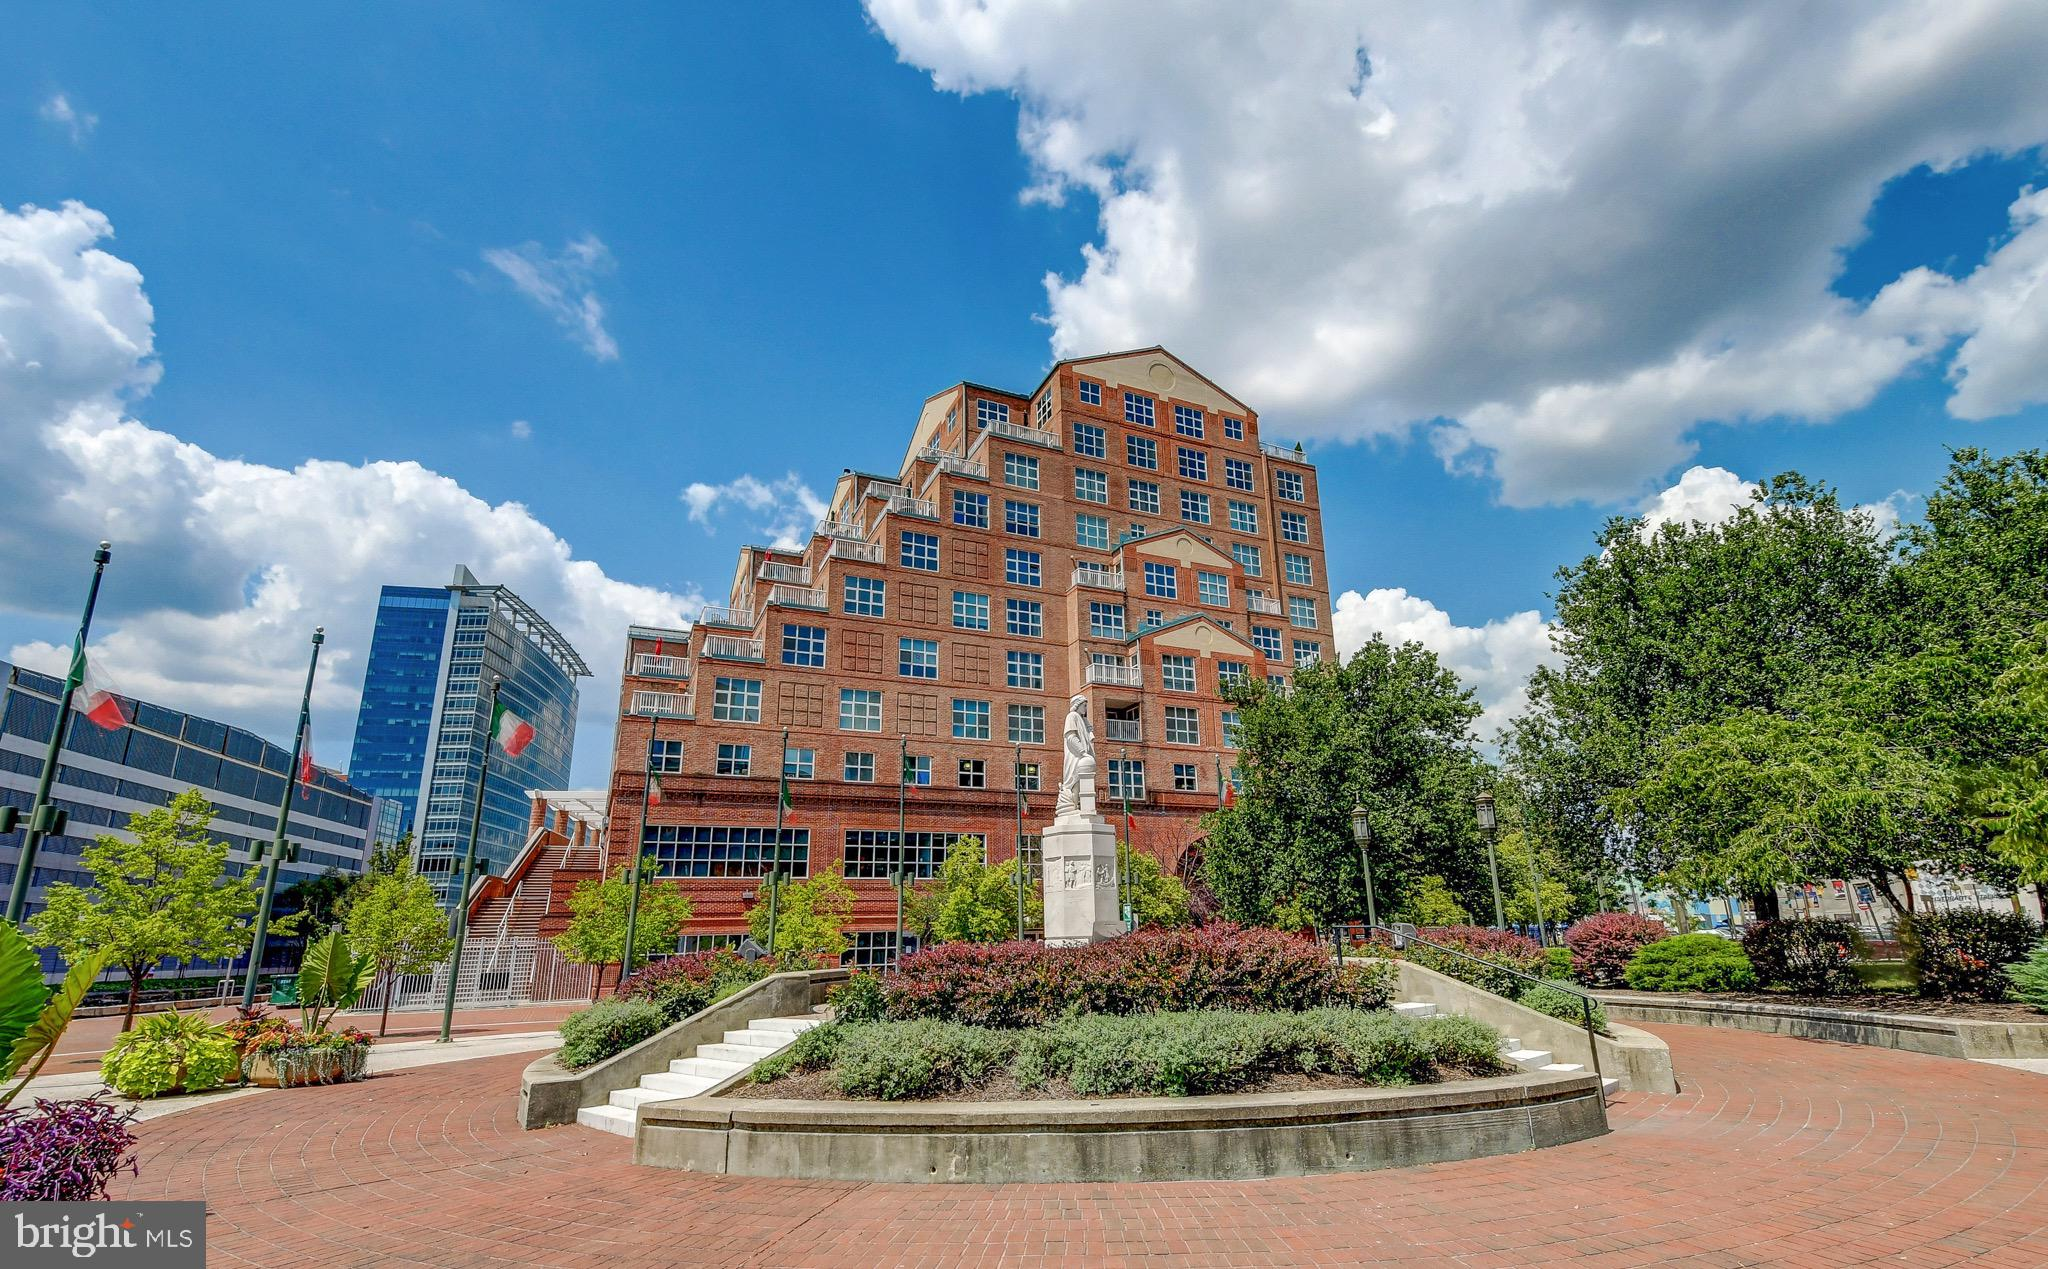 Beautifully remodeled 2 bedroom condo with neutral decor and rich hardwood flooring throughout.  The open floorpan allows for sun filled rooms in all living areas and both bedrooms.  Simply remarkable!  Located in Scarlett Place in the perfect location where The Inner Harbor Harbor East and Little Italy converge - this is a dream for anyone who wants to sample hundreds of restaurants within a short walking distance.  Secure gated parking is also included. A recently remodeled home in the heart of everything going on in the city at a very attractive price - what else could anyone ask for?